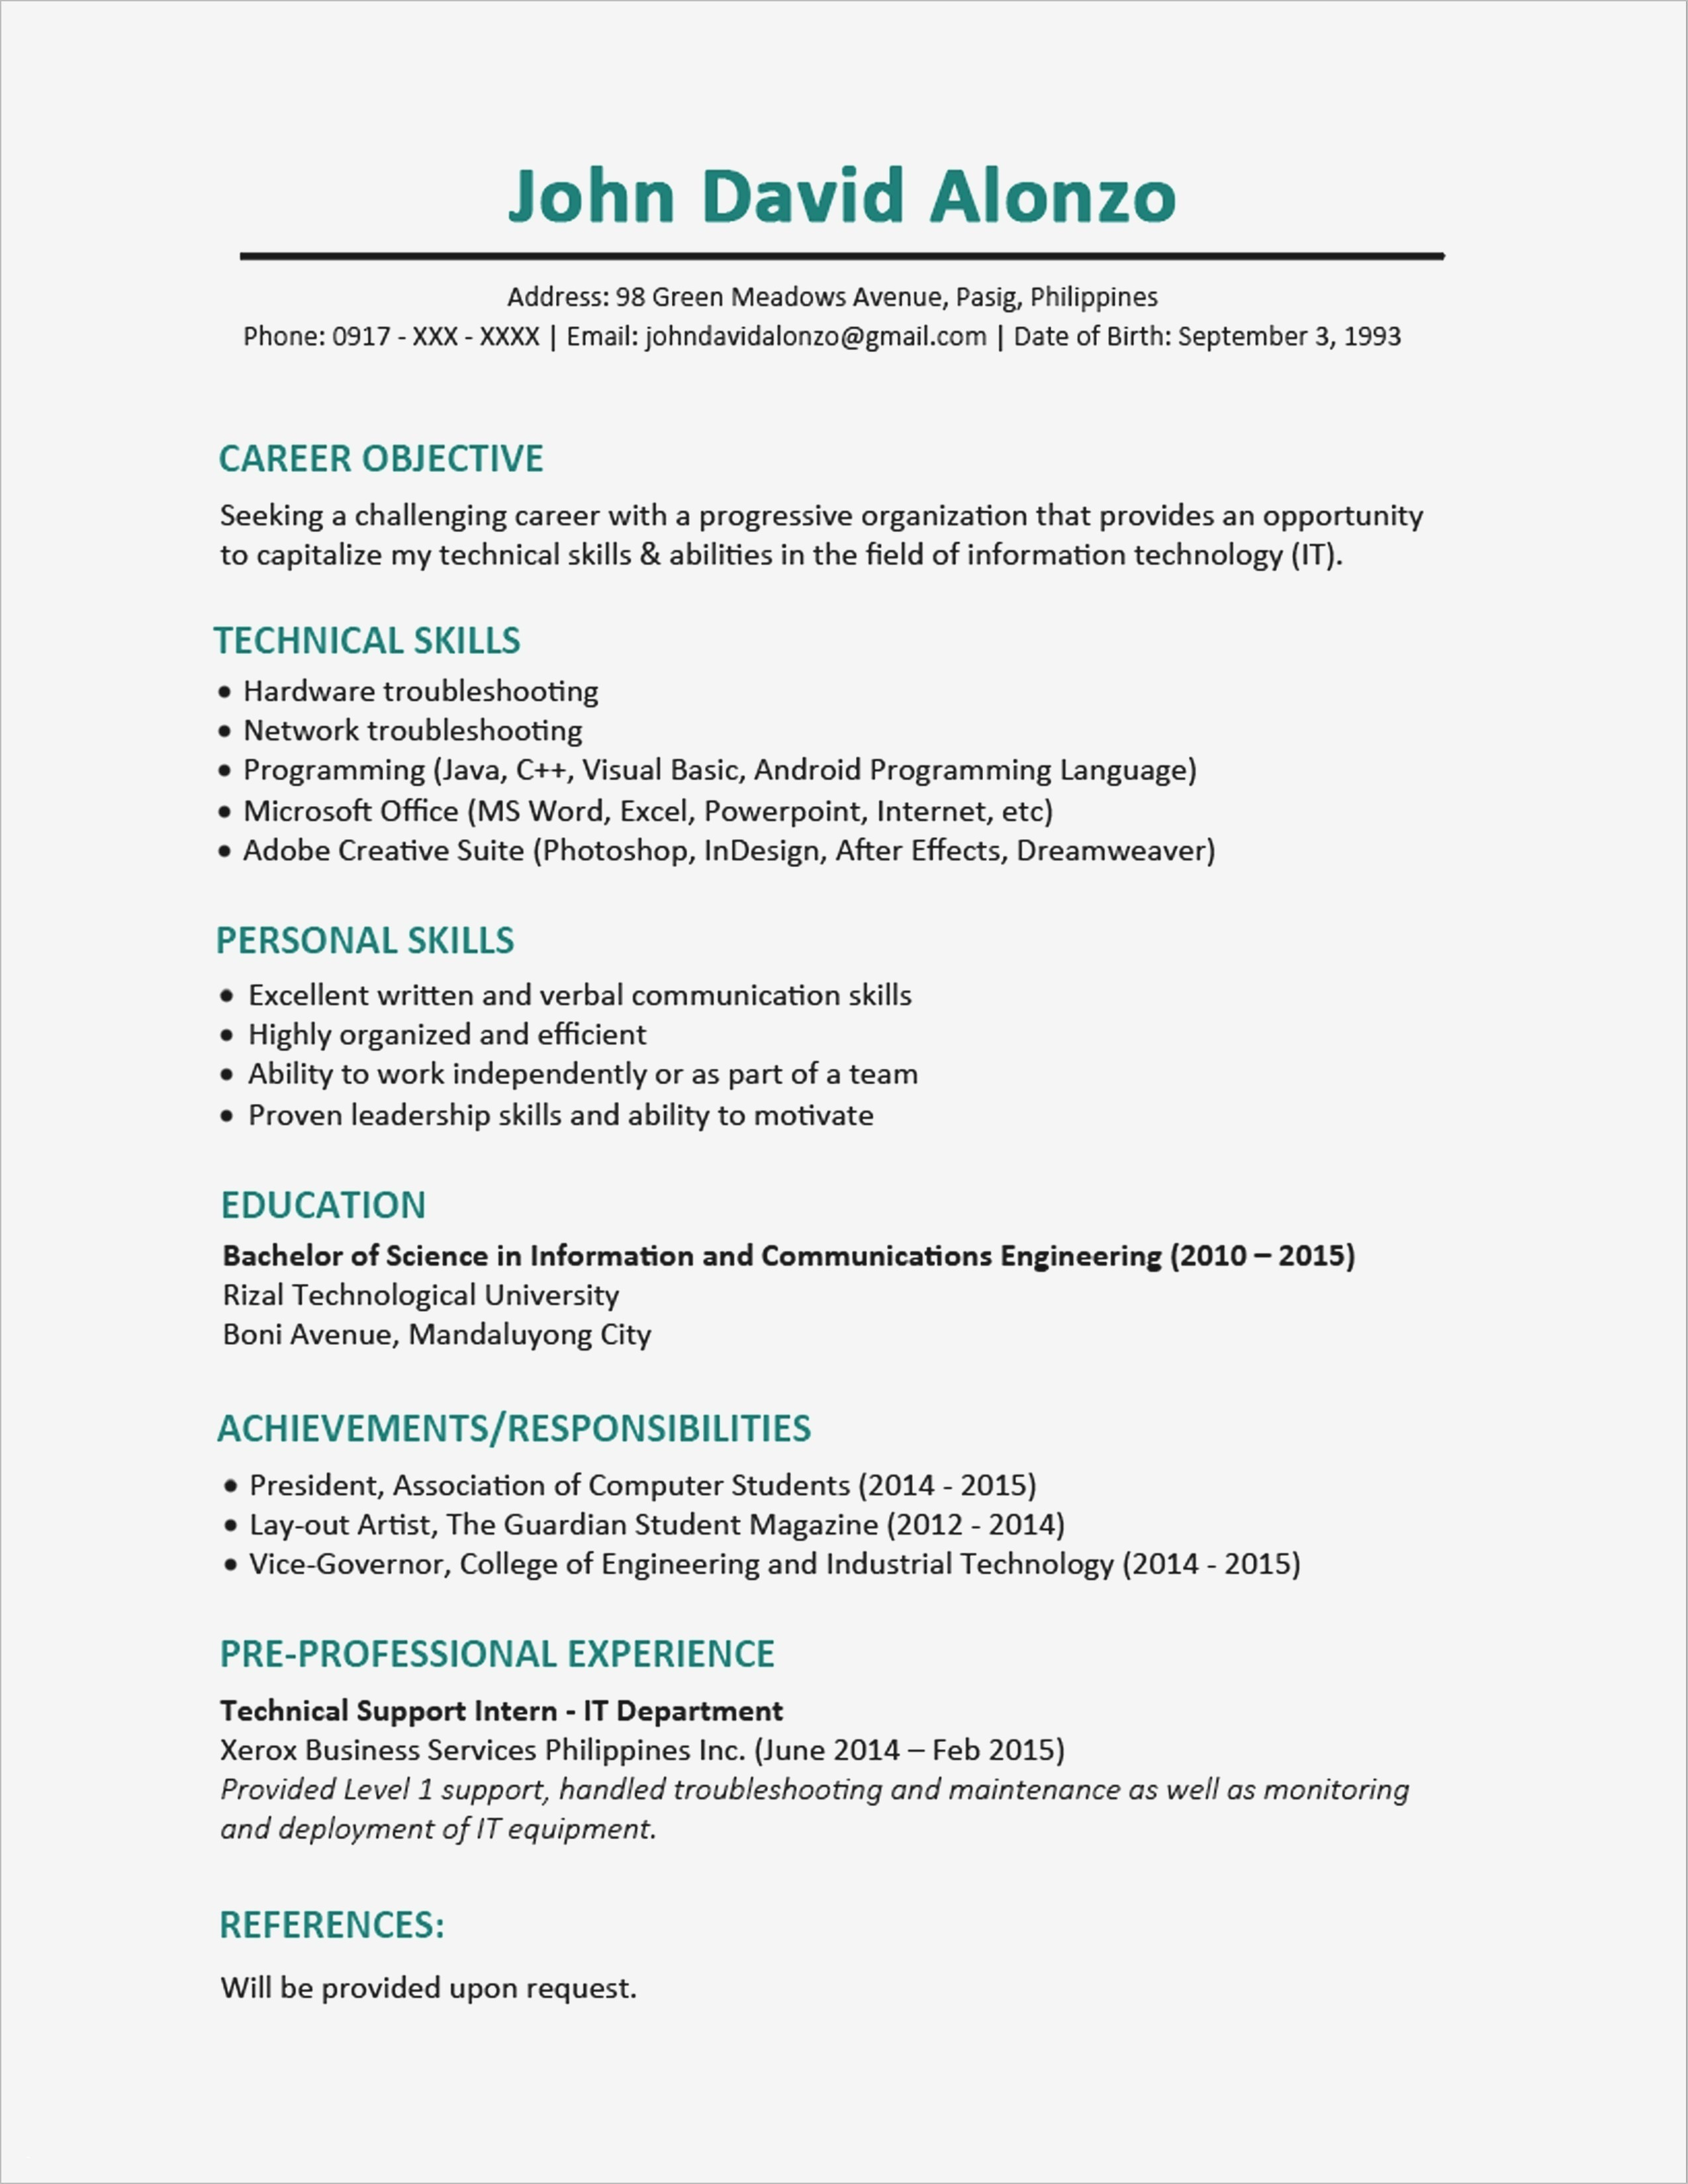 8 Babysitter Resume Skills Collection | Resume Database Template